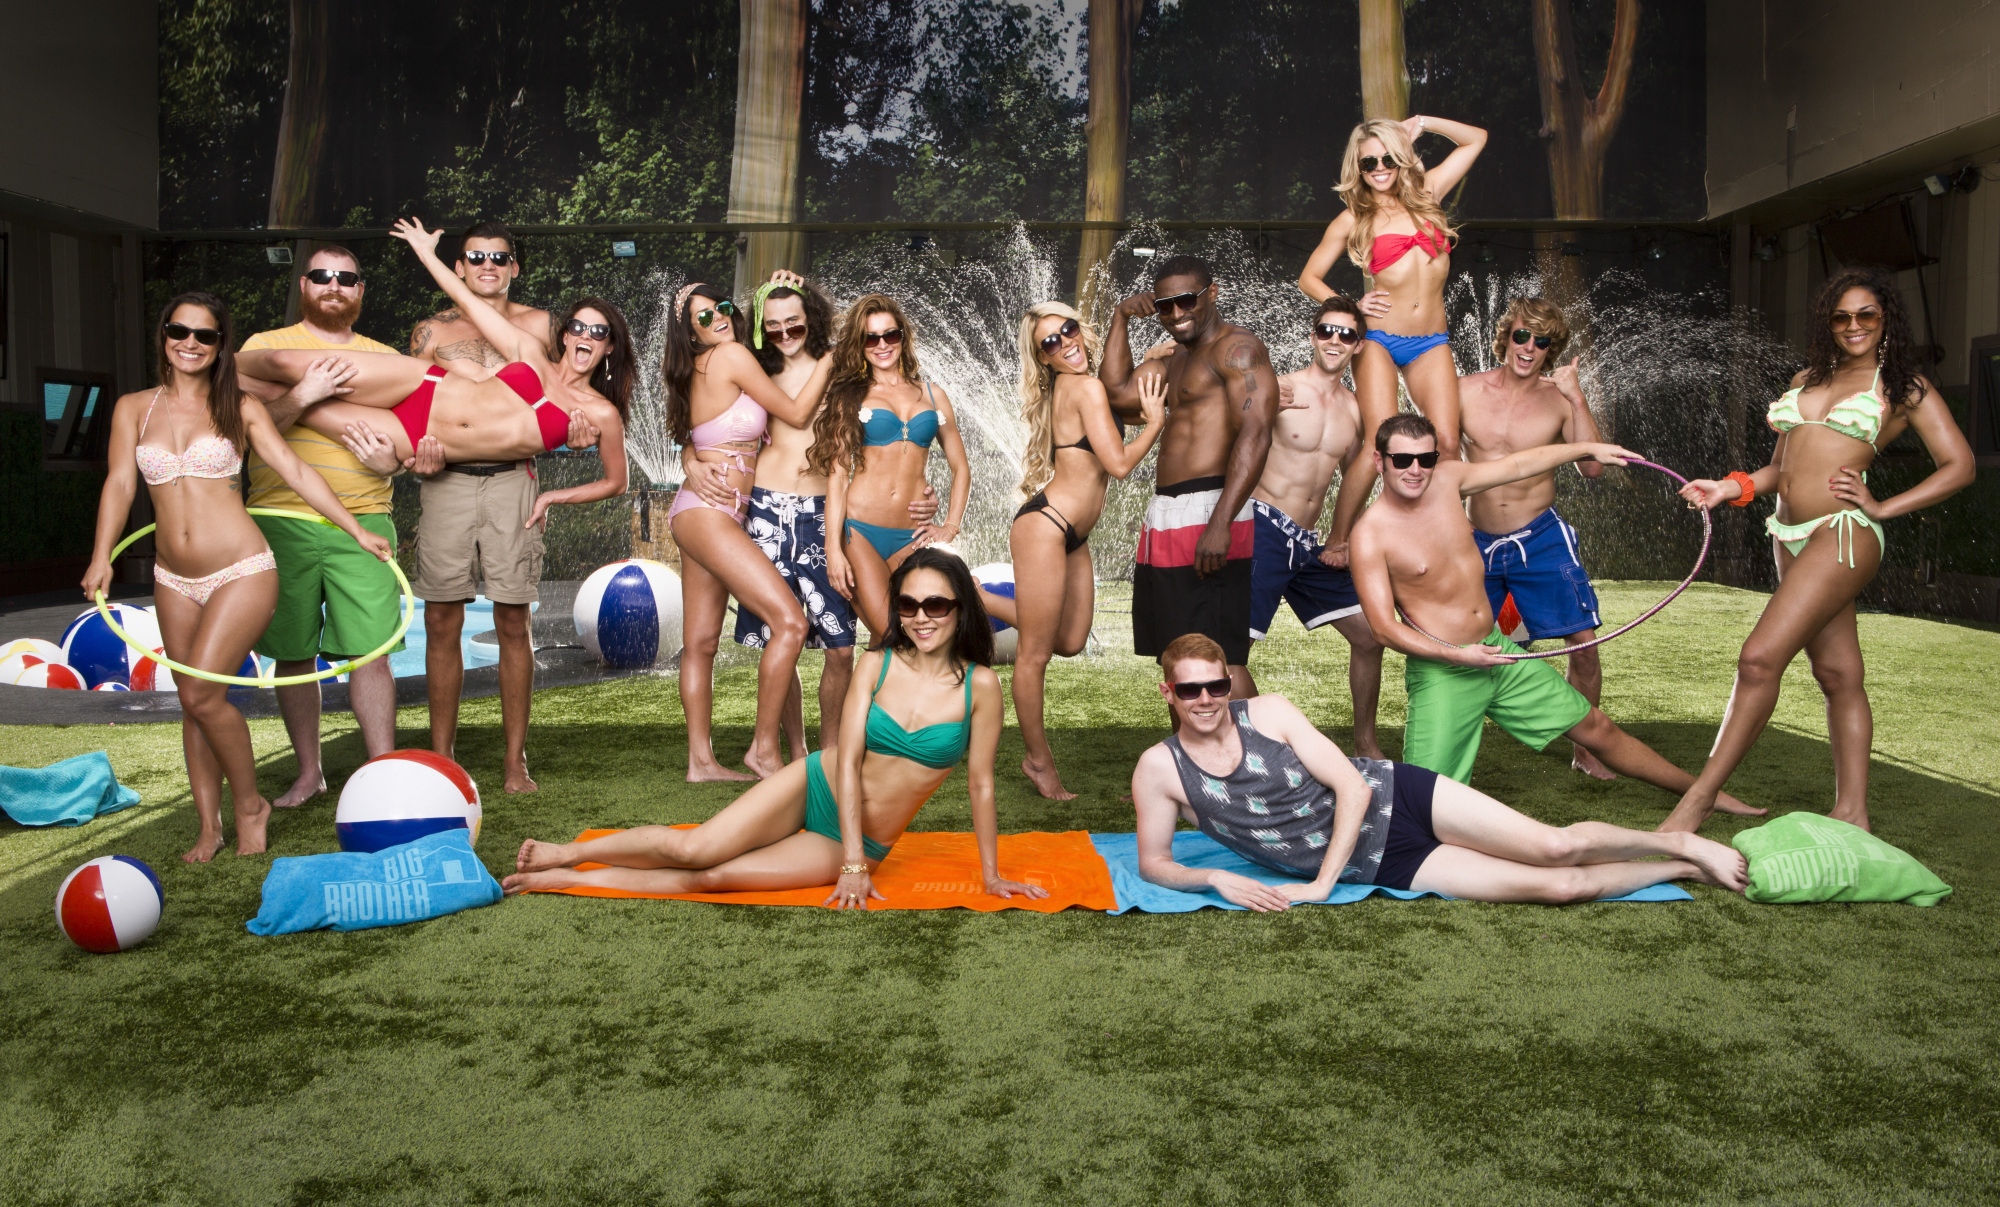 Houseguests in Swimsuits